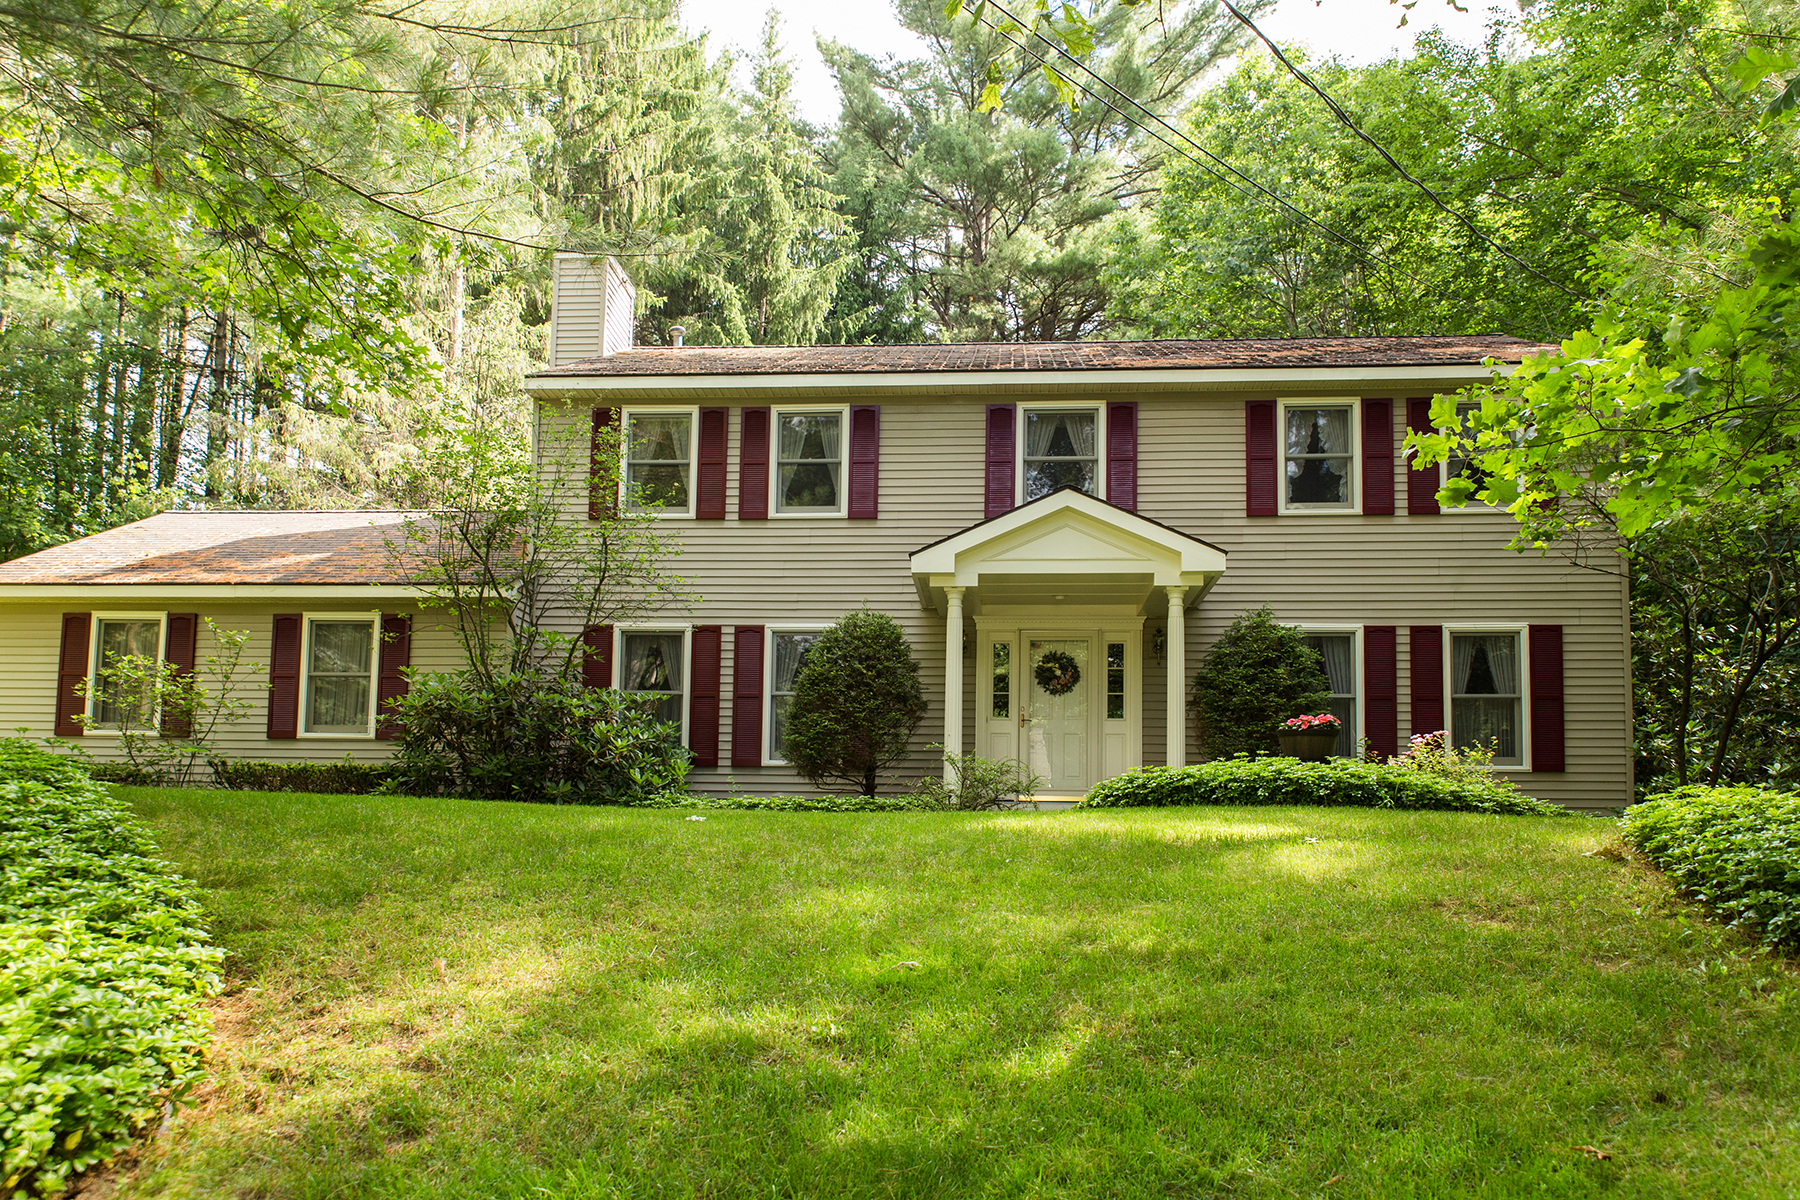 Vivienda unifamiliar por un Venta en 4 bedroom in a peaceful neighborhood 10 Round Table Road Saratoga Springs, Nueva York 12866 Estados Unidos